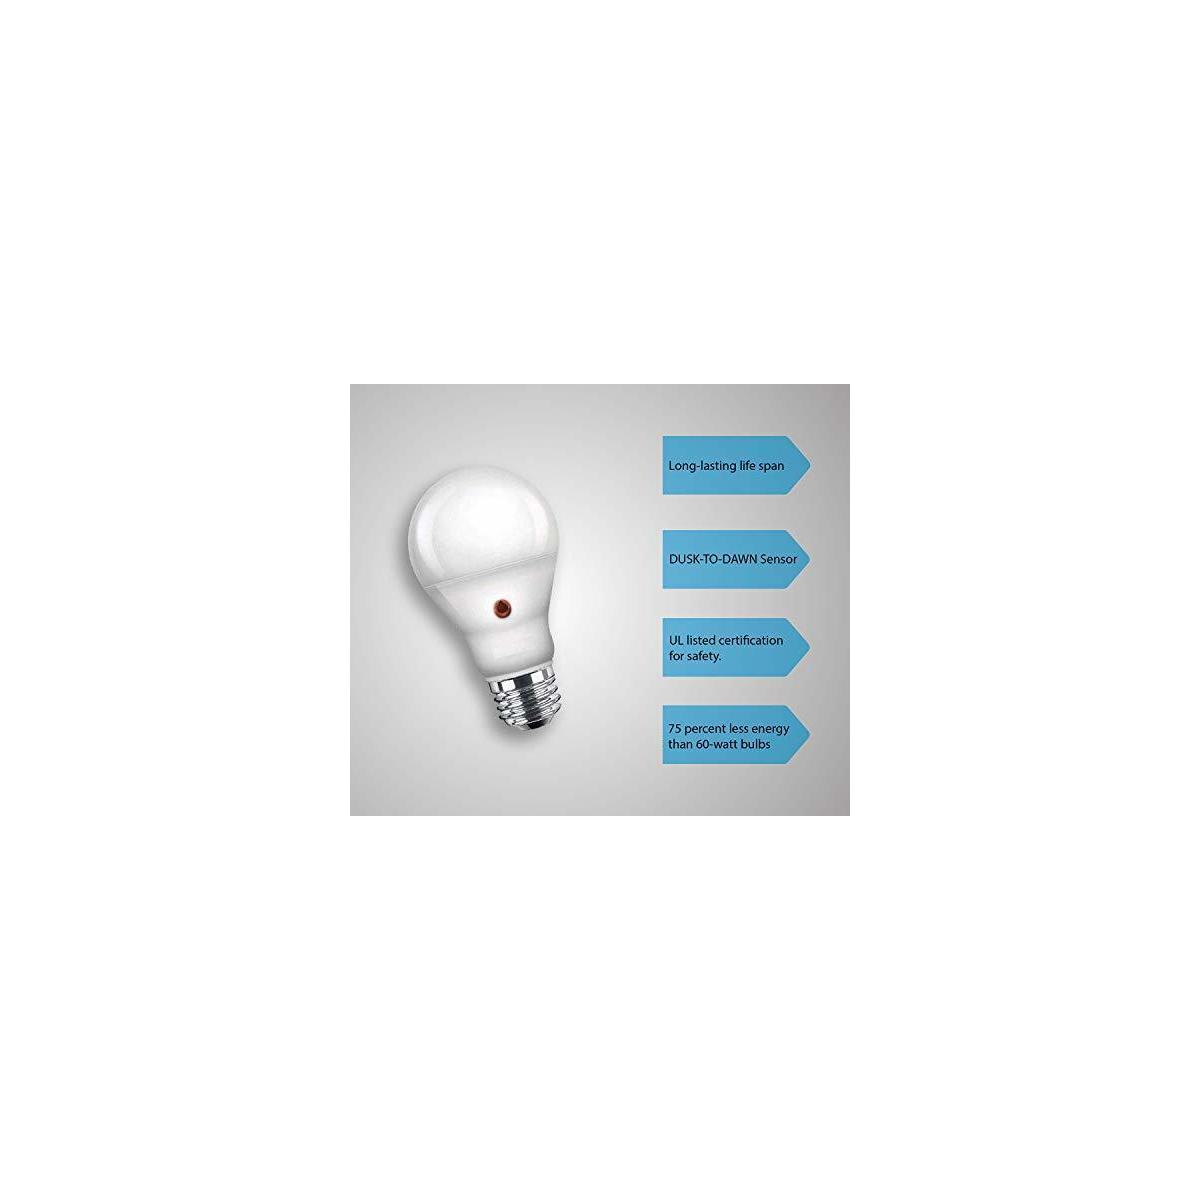 Led Dusk to dawn outdoor/Indoor lighting bulbs, Built in light sensor that turns the lights on automatically when the sun goes down and turns the light off when the sun rises.